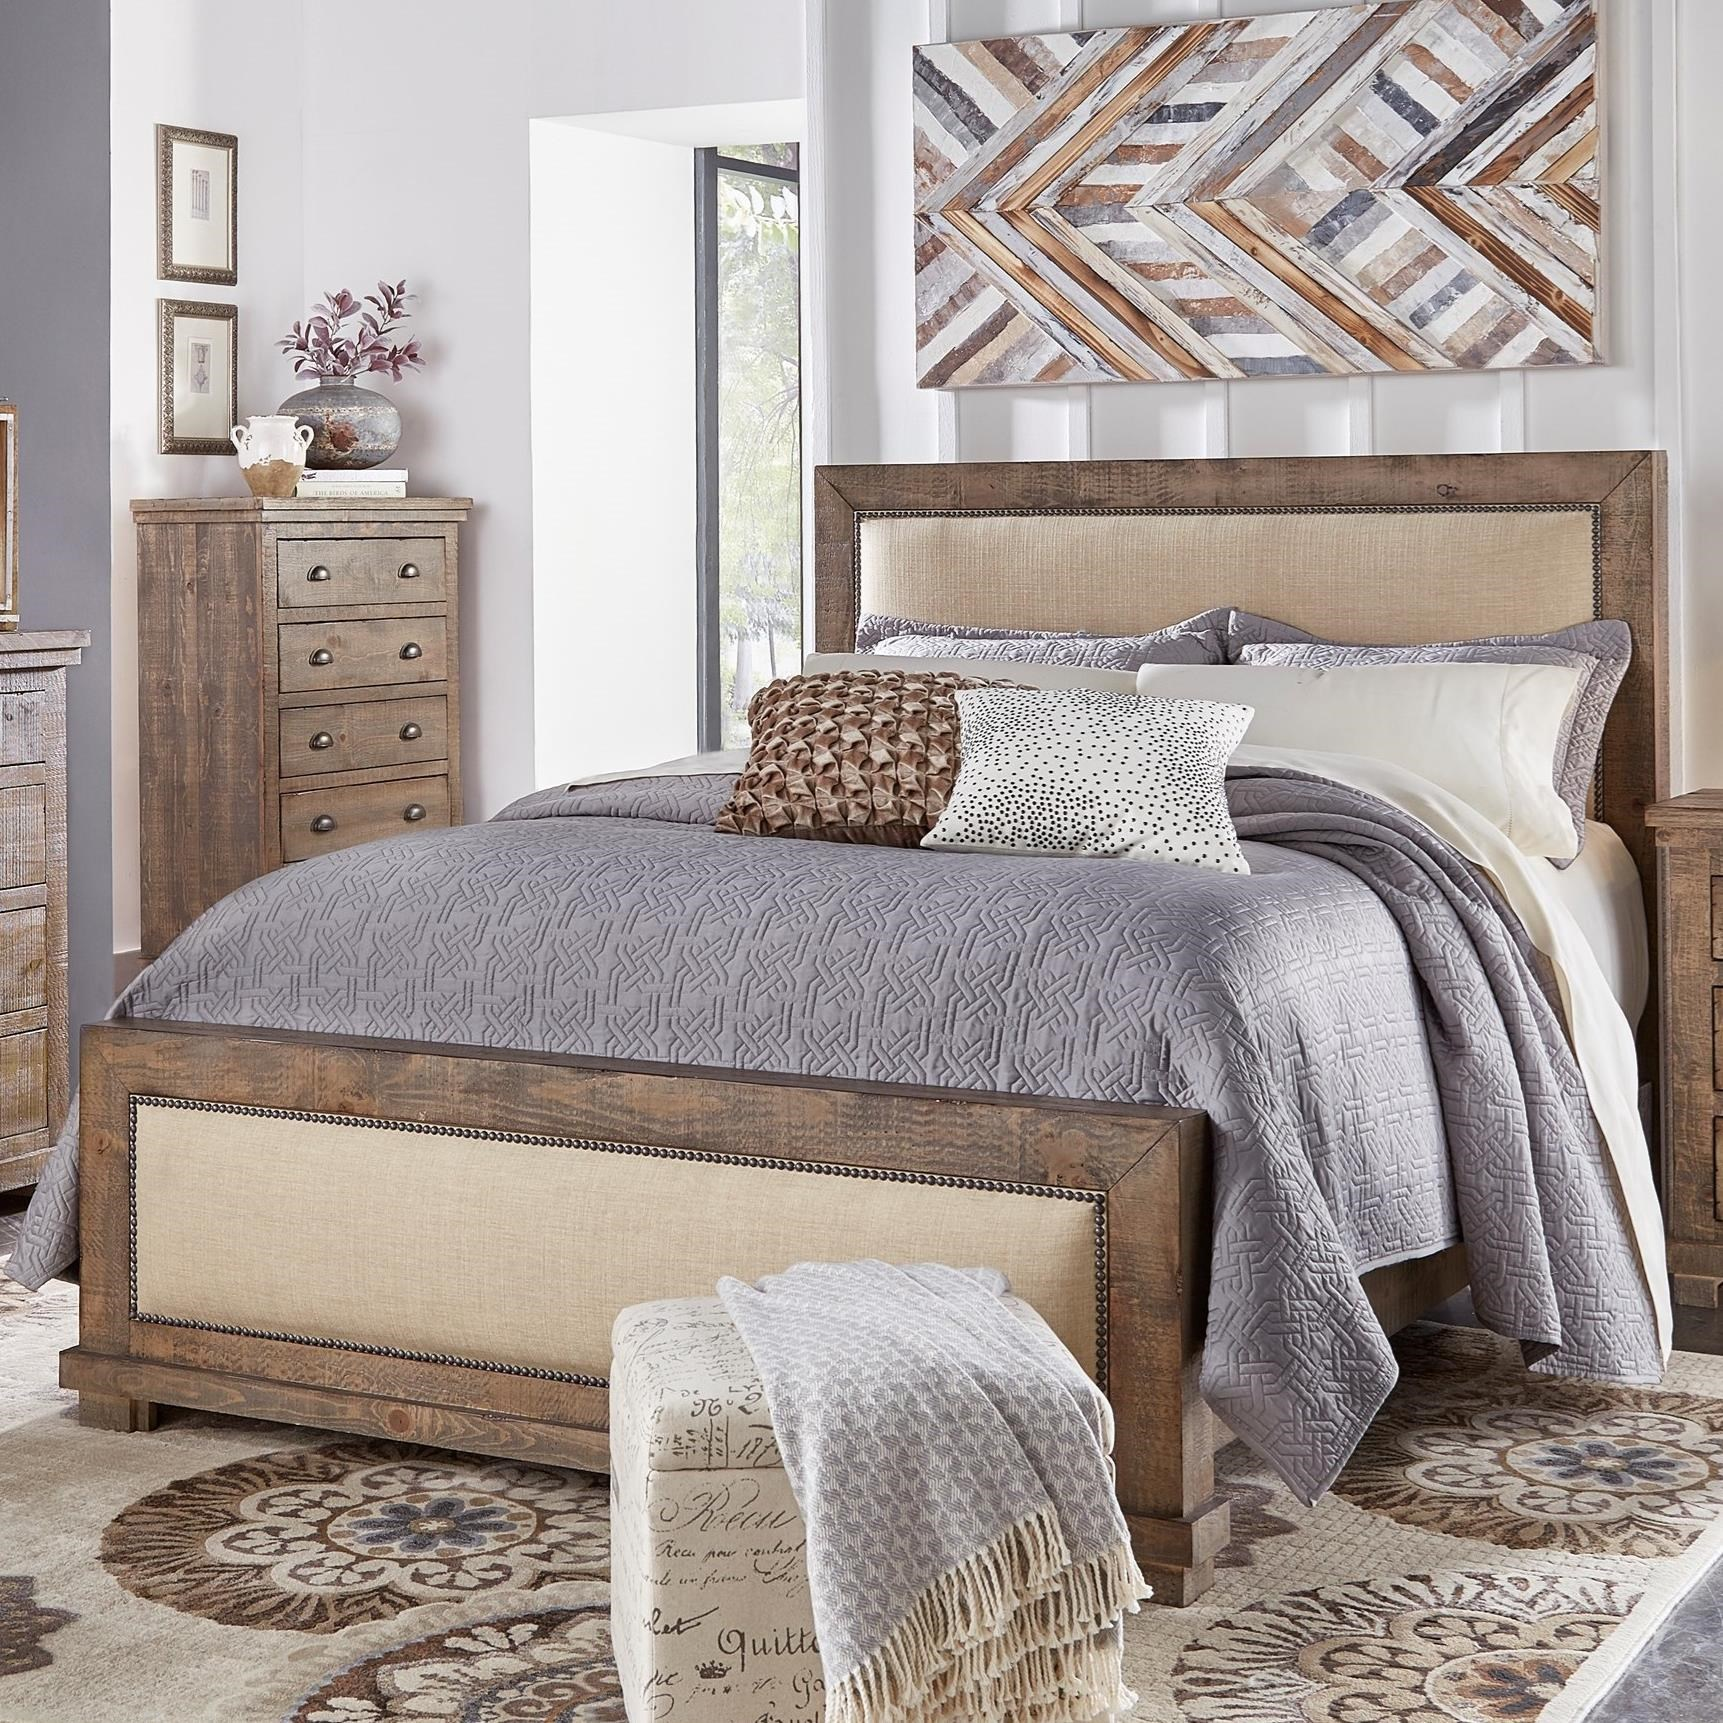 Merveilleux Progressive Furniture Willow Queen Upholstered Bed With Distressed Pine  Frame